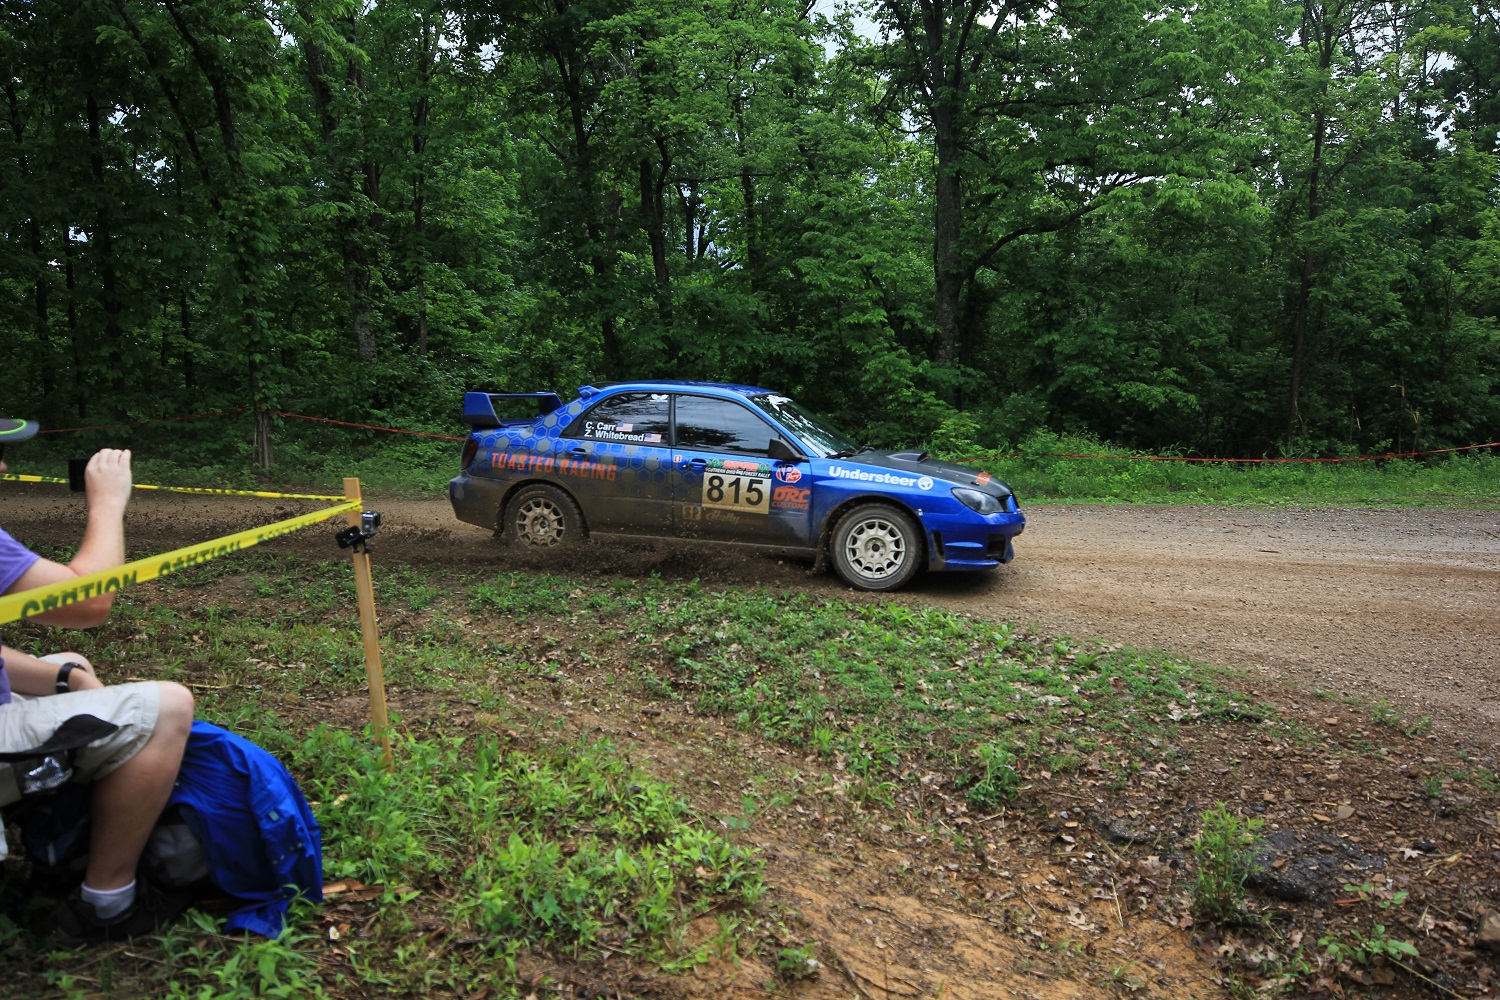 May 19th, 2018 Scioto Trail Forest Rally - Winners: Whitebread/CarrPhoto Cred: Rally America